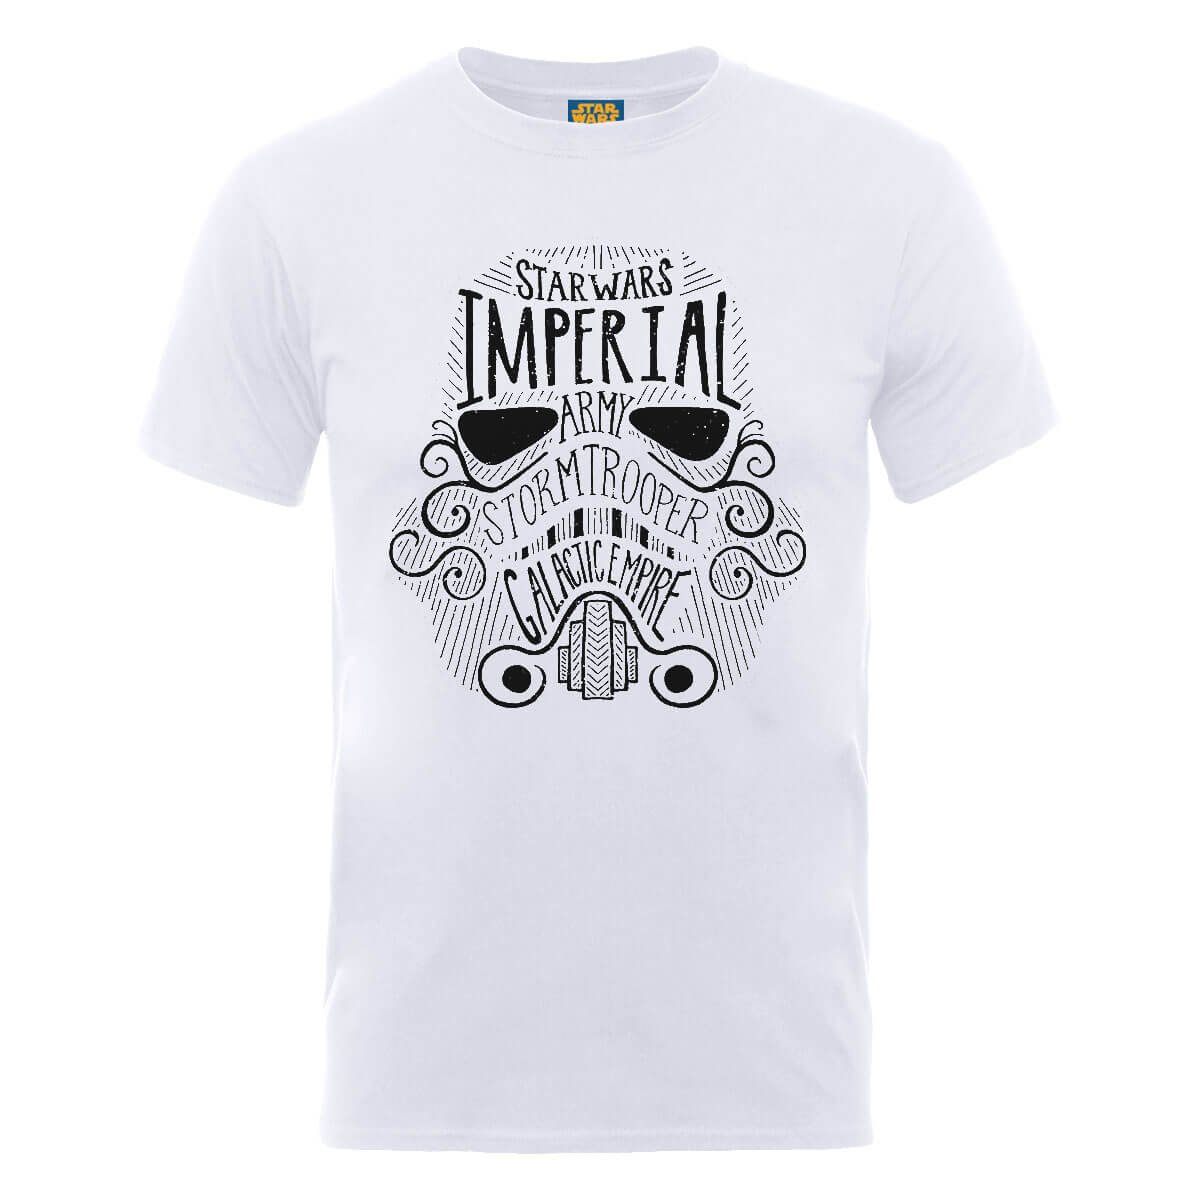 Star Wars Imperial Army Storm Trooper Galactic Empire T-Shirt - White